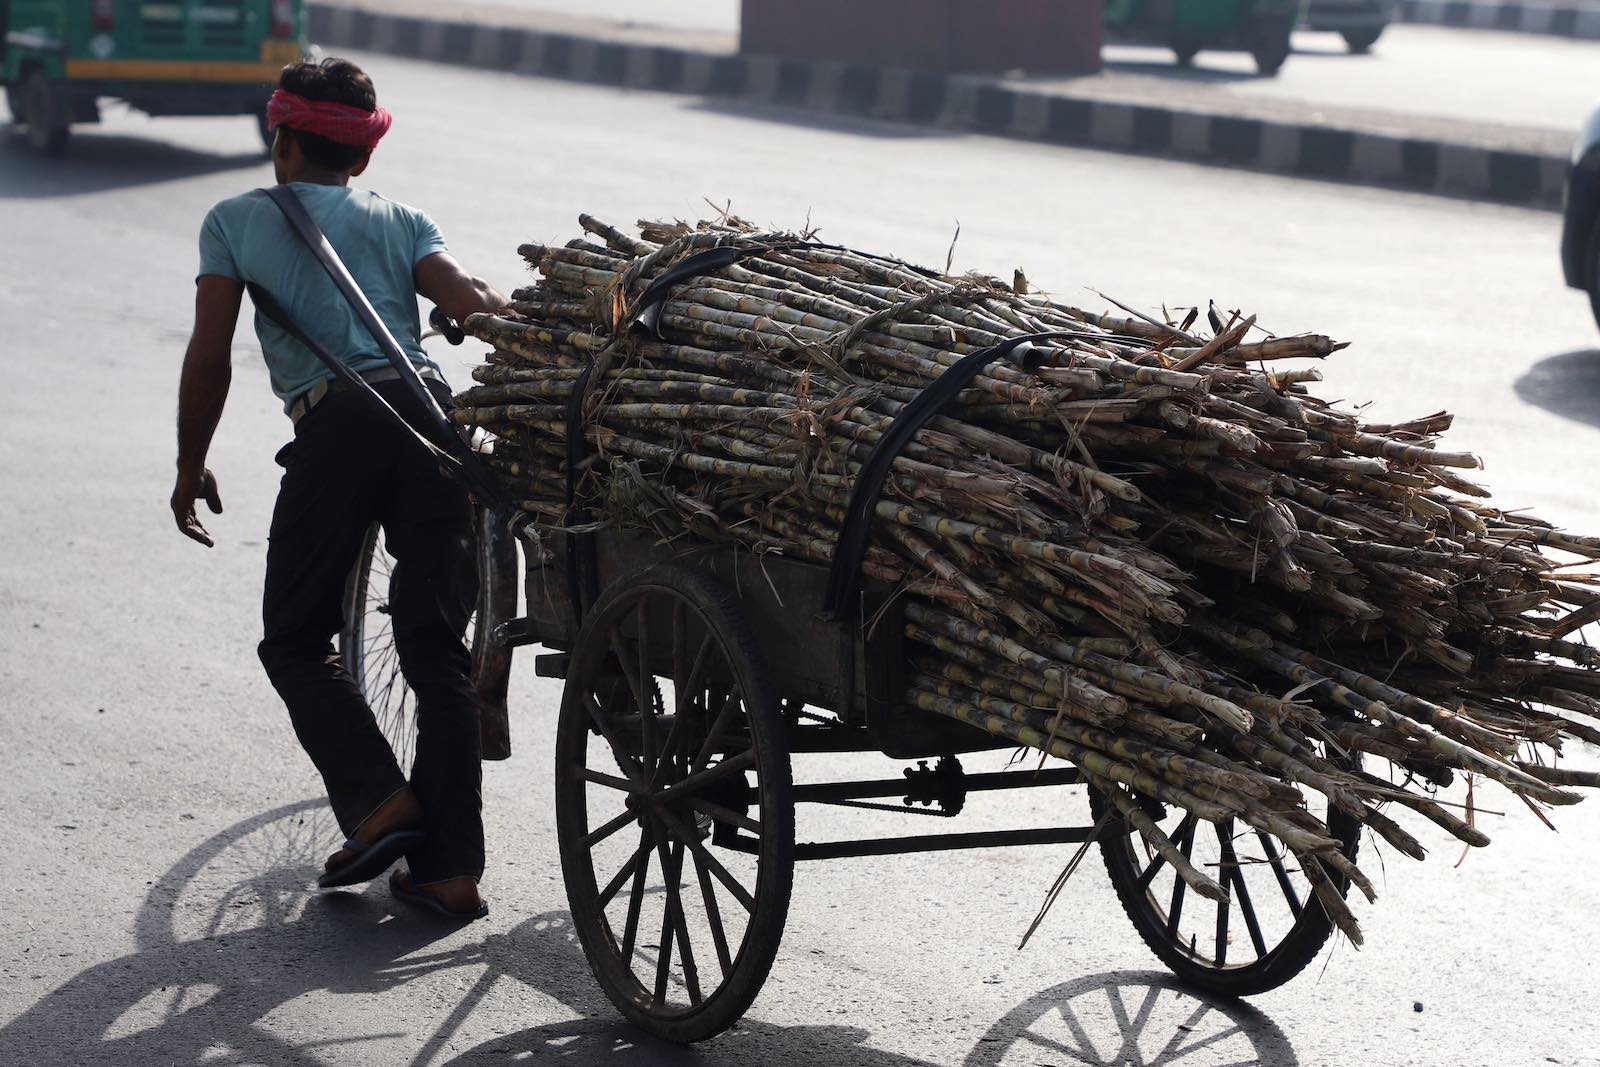 After the harvest, sugarcane in New Delhi in March (Photo: filled with sugarcane in New Delhi, India, on 29 March 2019. (Photo by Nasir Kachroo via Getty)